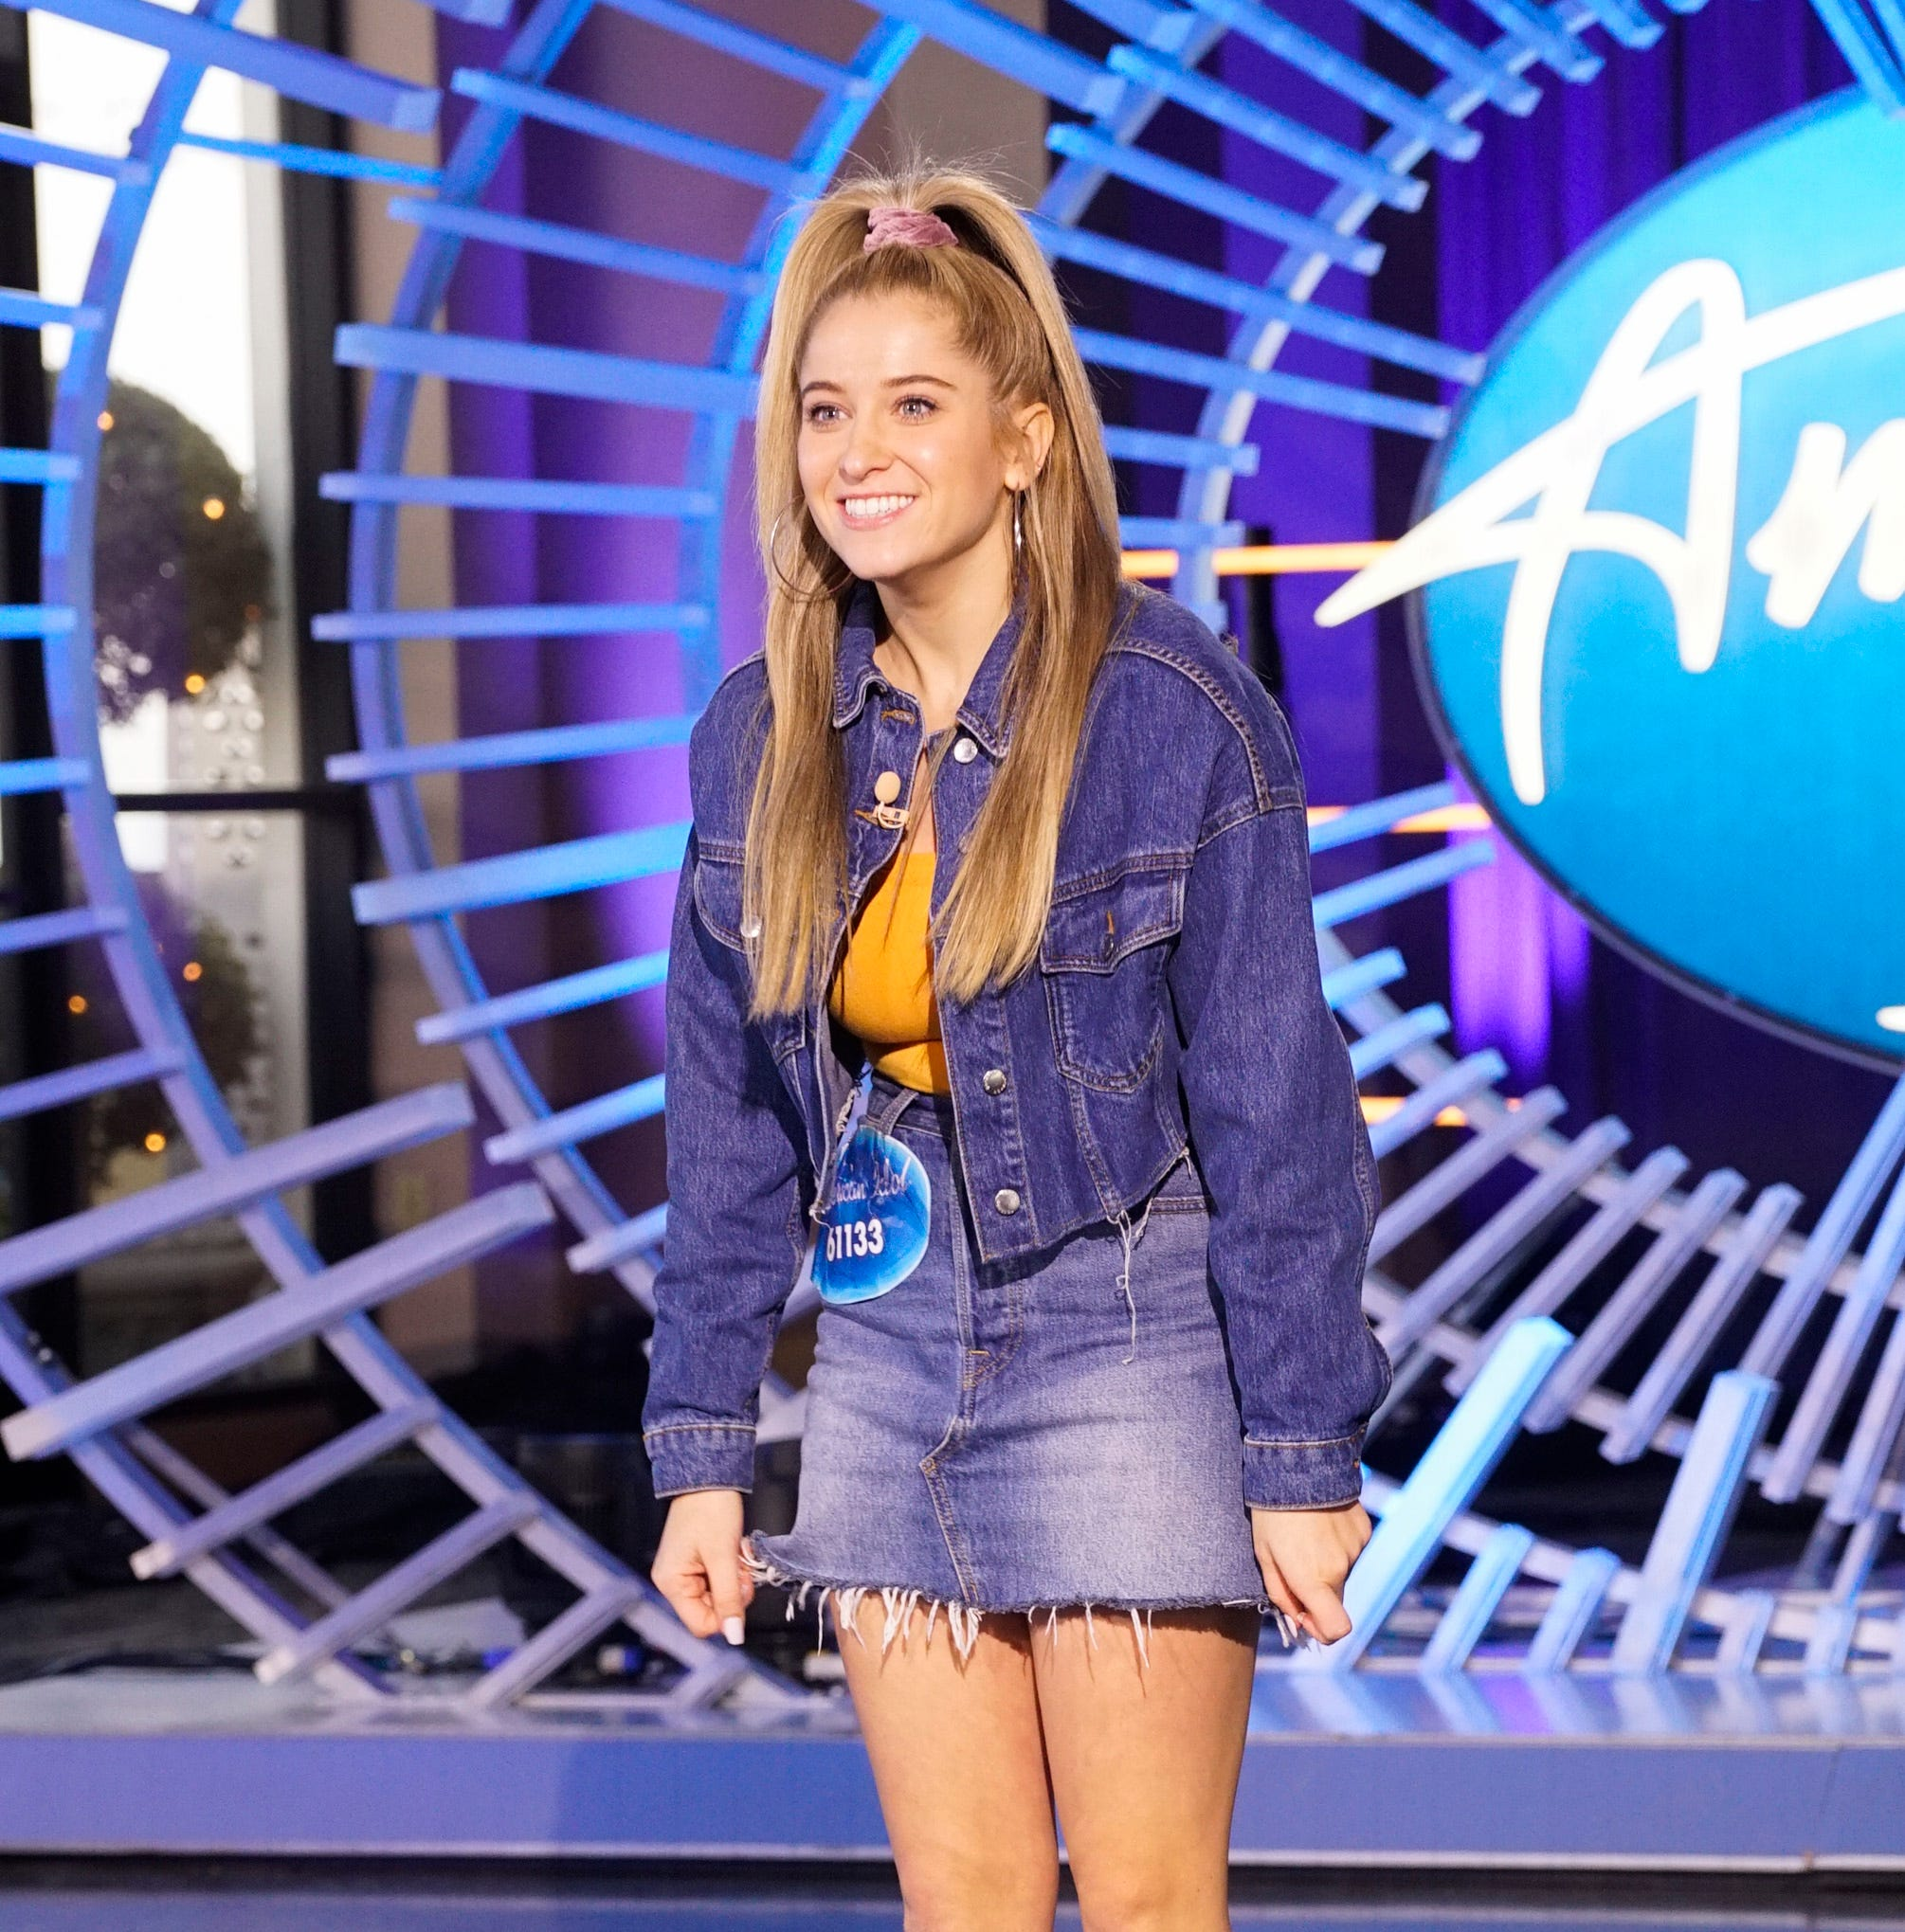 American Idol: Delaware's Margie Mays to sing again after making cut